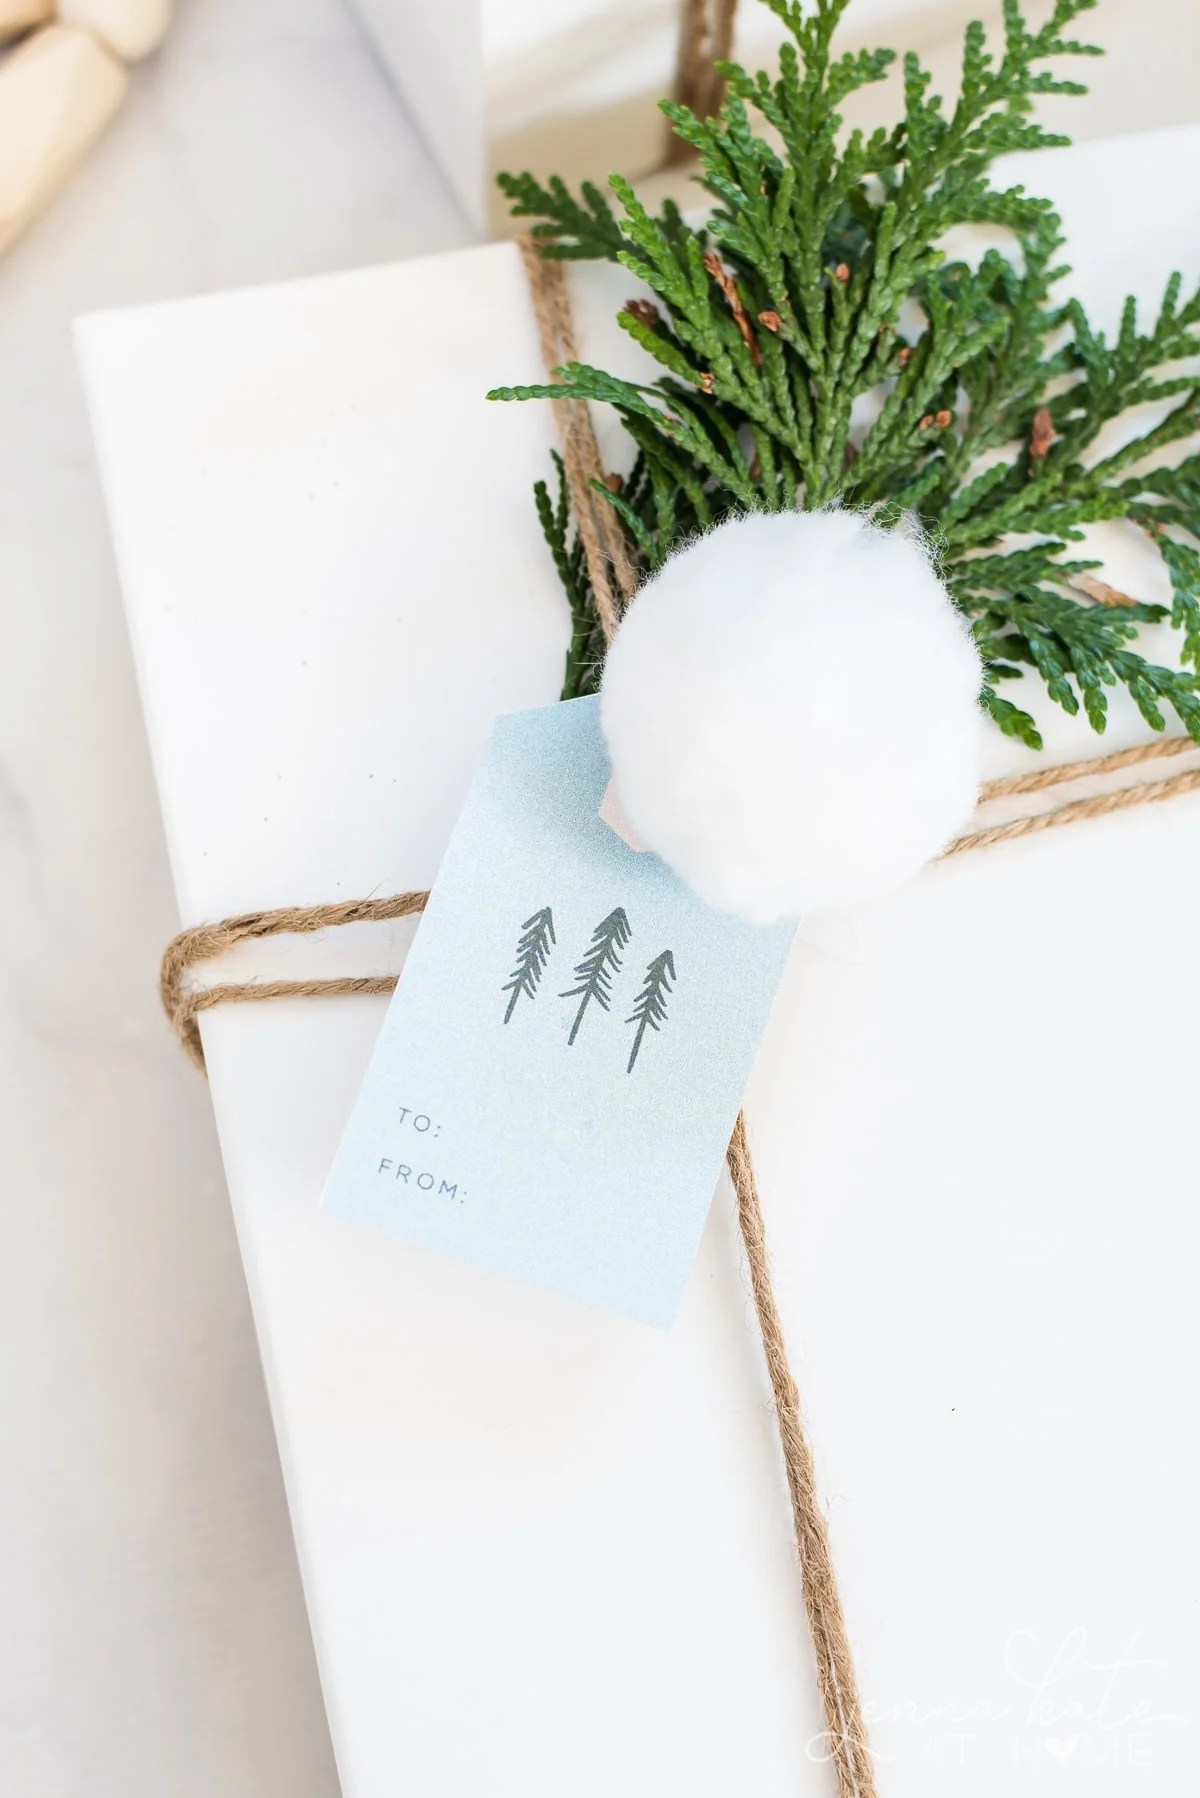 Make your gifts extra special this Christmas with these free printable gift tags